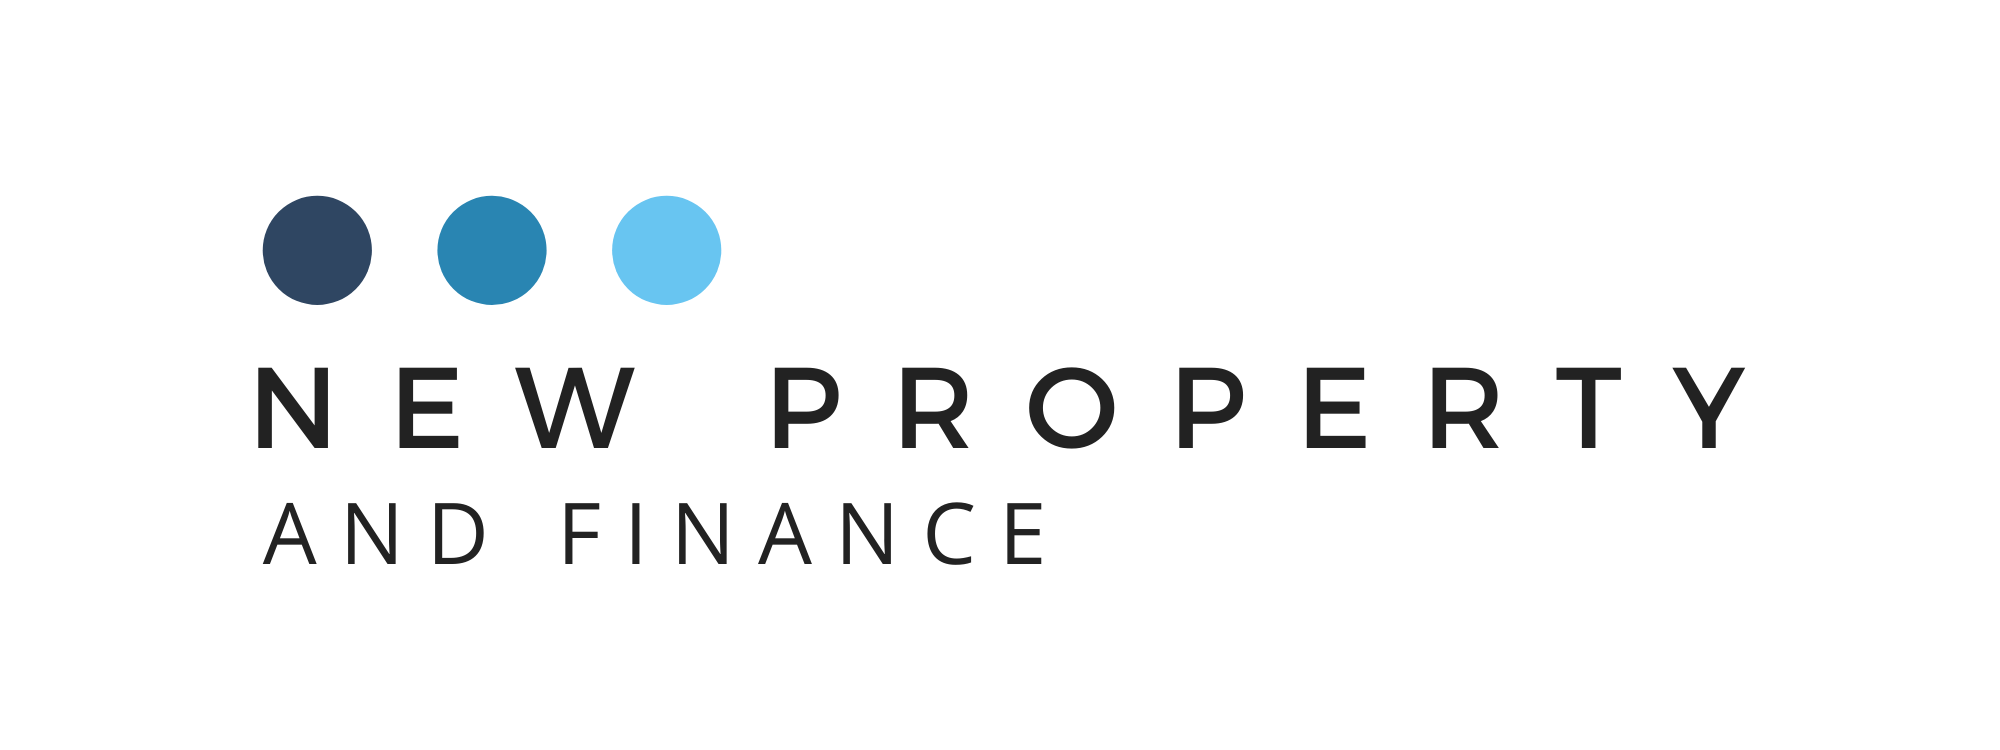 New Property and Finance Logo